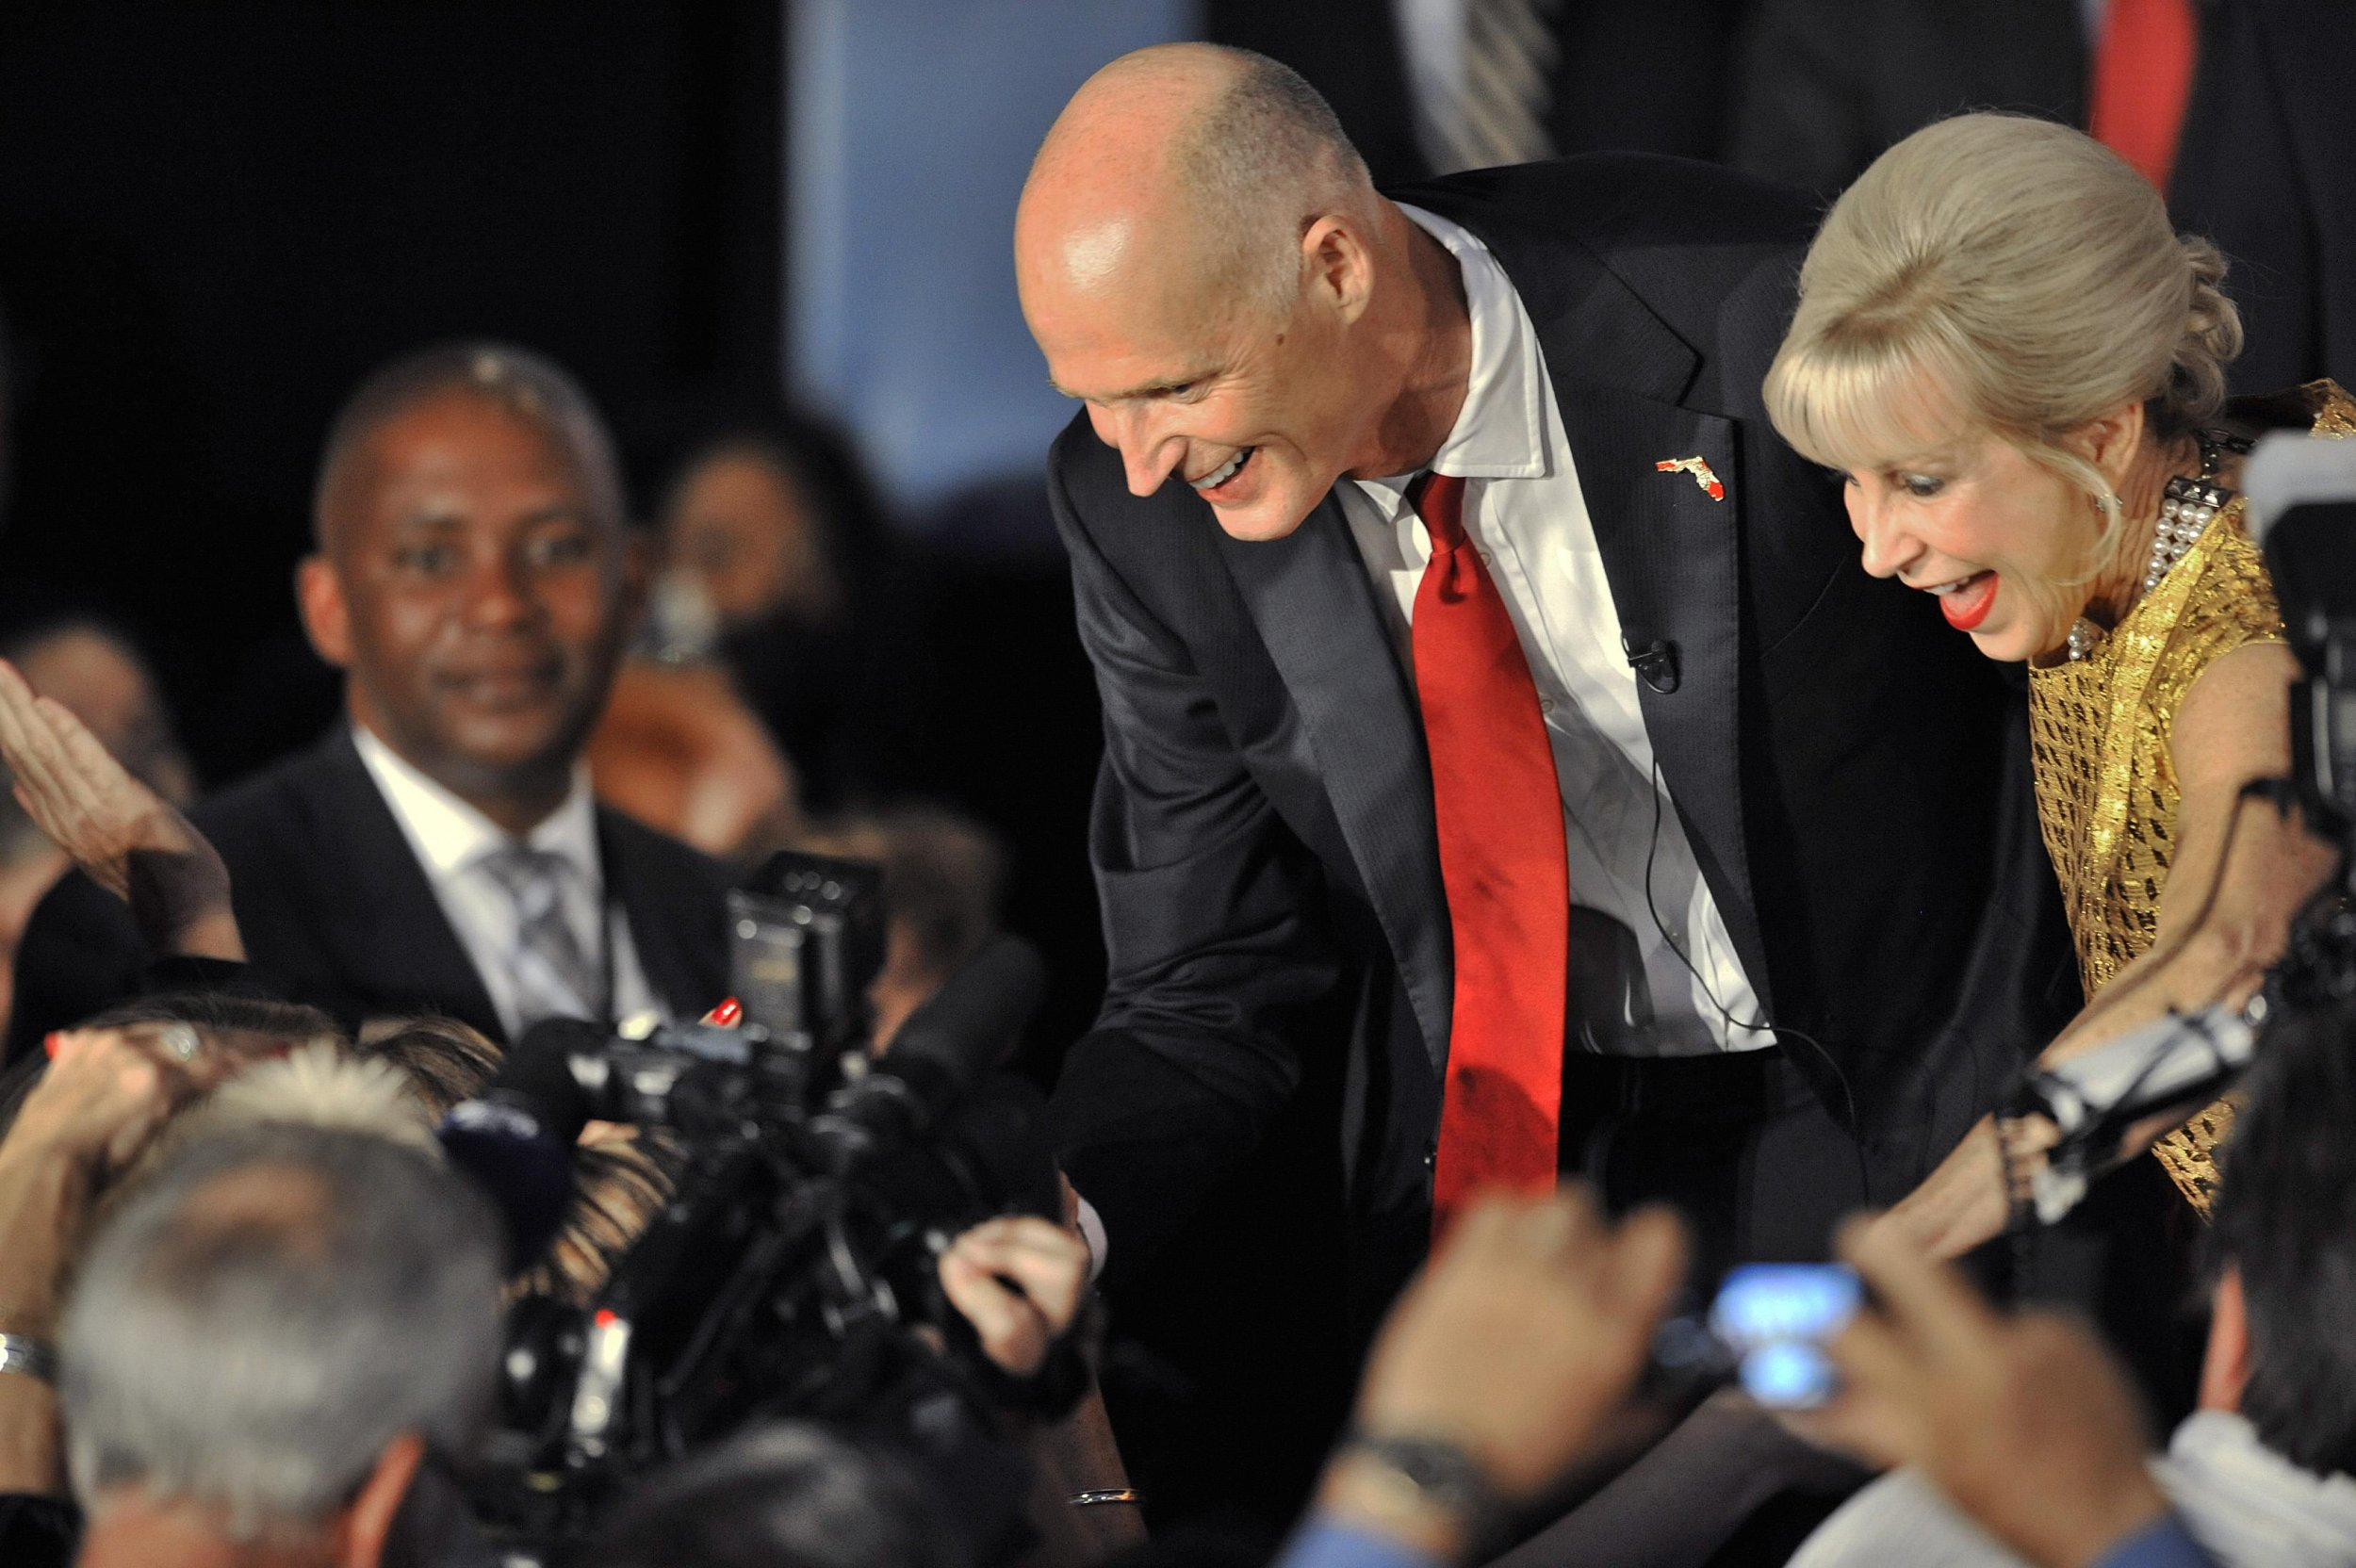 11-4-14 Rick Scott win